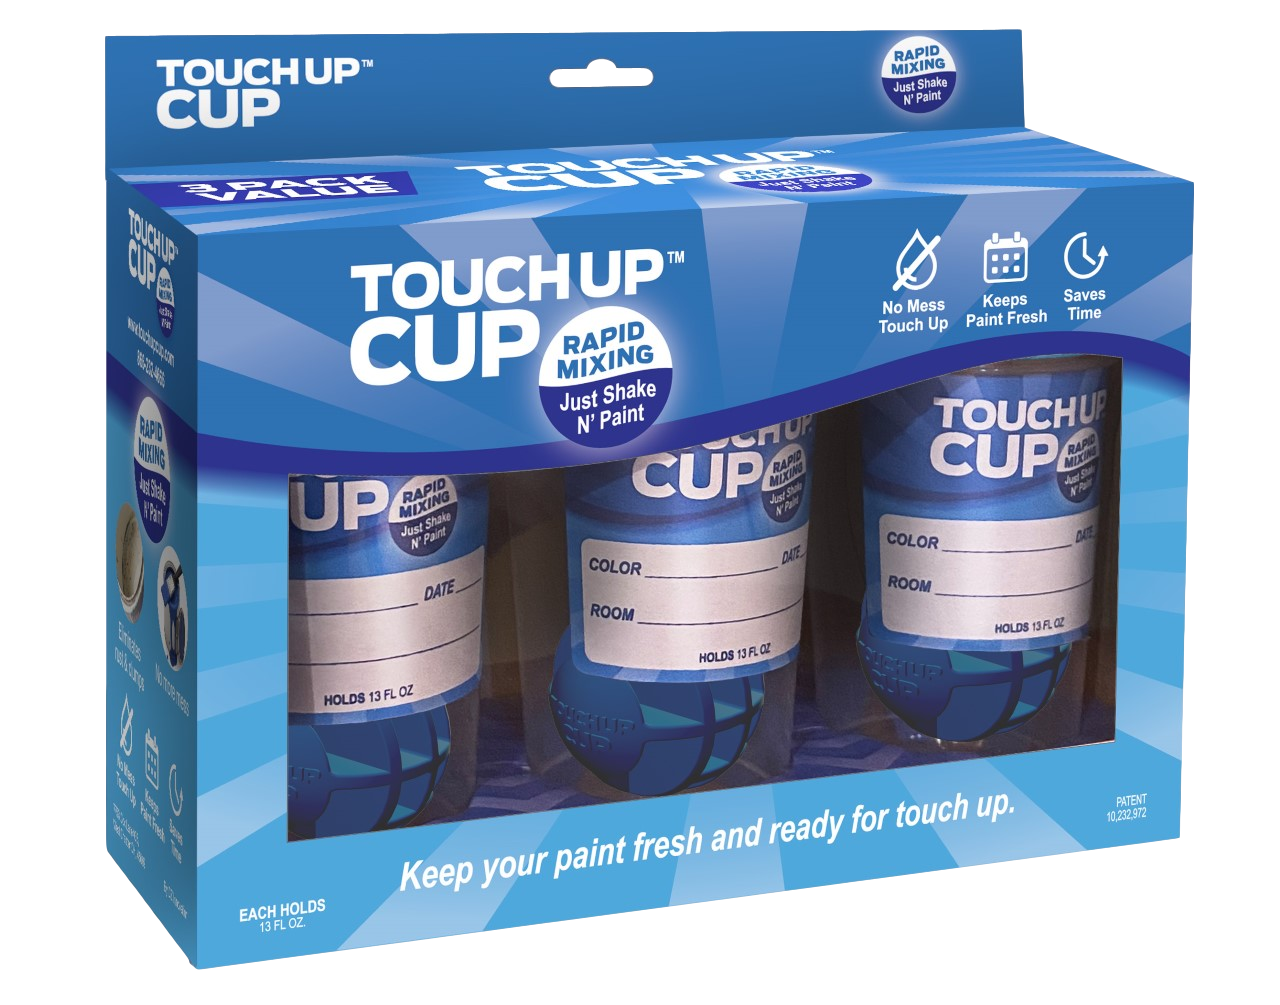 Touch Up Cup | Three Pack - Just Shake N' Paint!